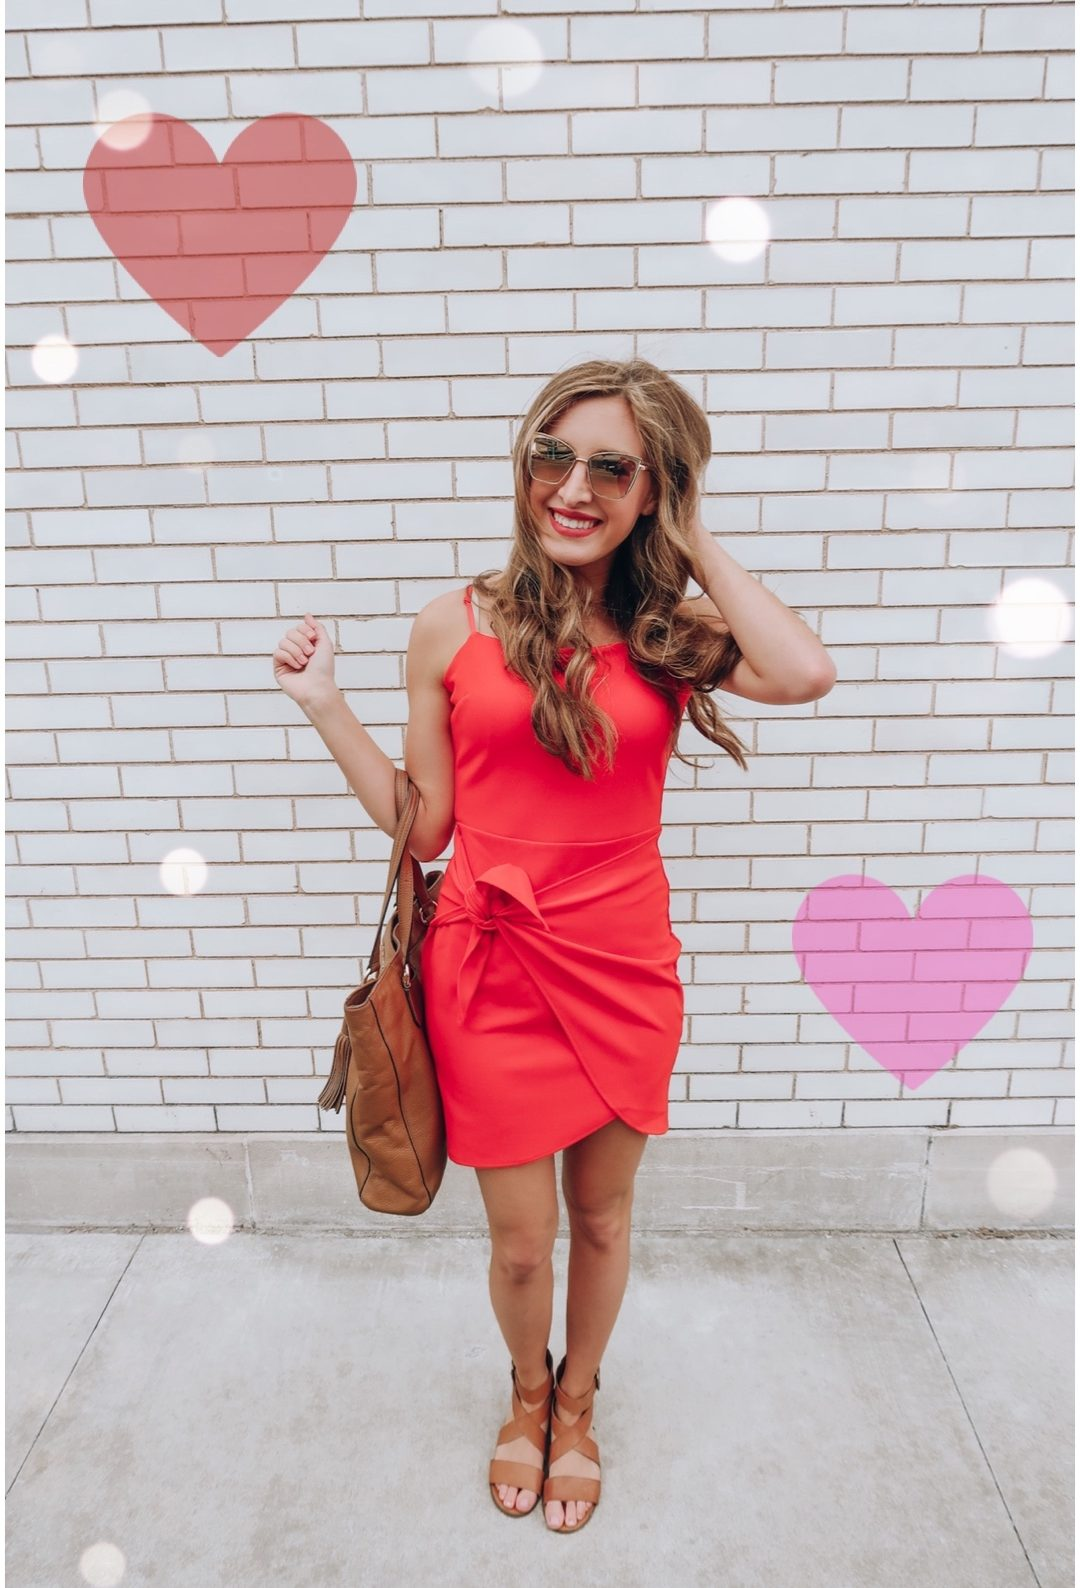 IMG 3976 e1580312109240 - Valentine's Day Outfit Inspo